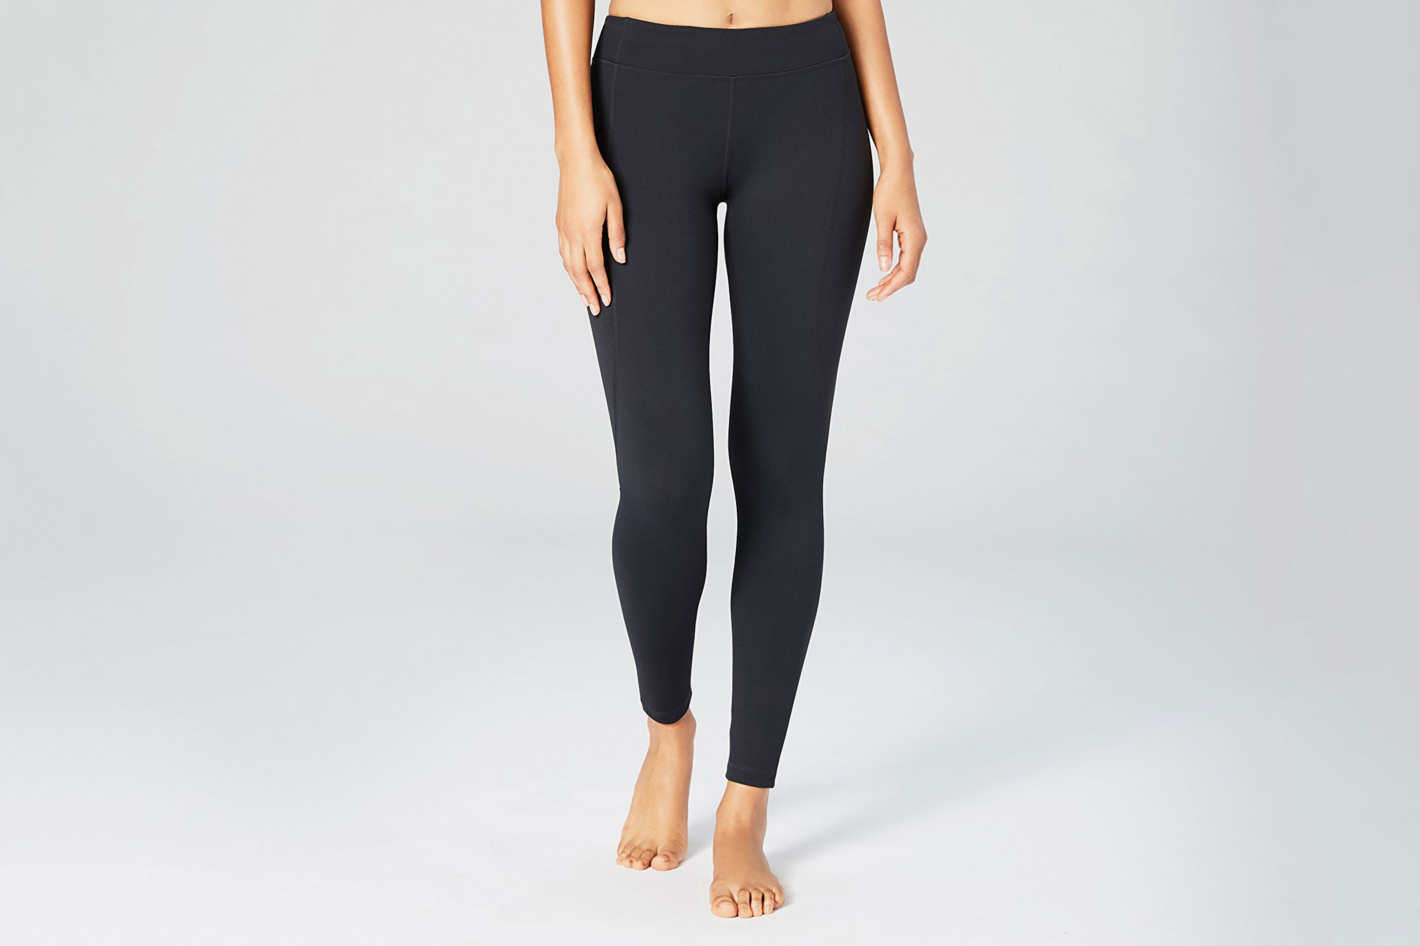 Core 10 Women's 'Build Your Own' Yoga Pant Full-Length Legging